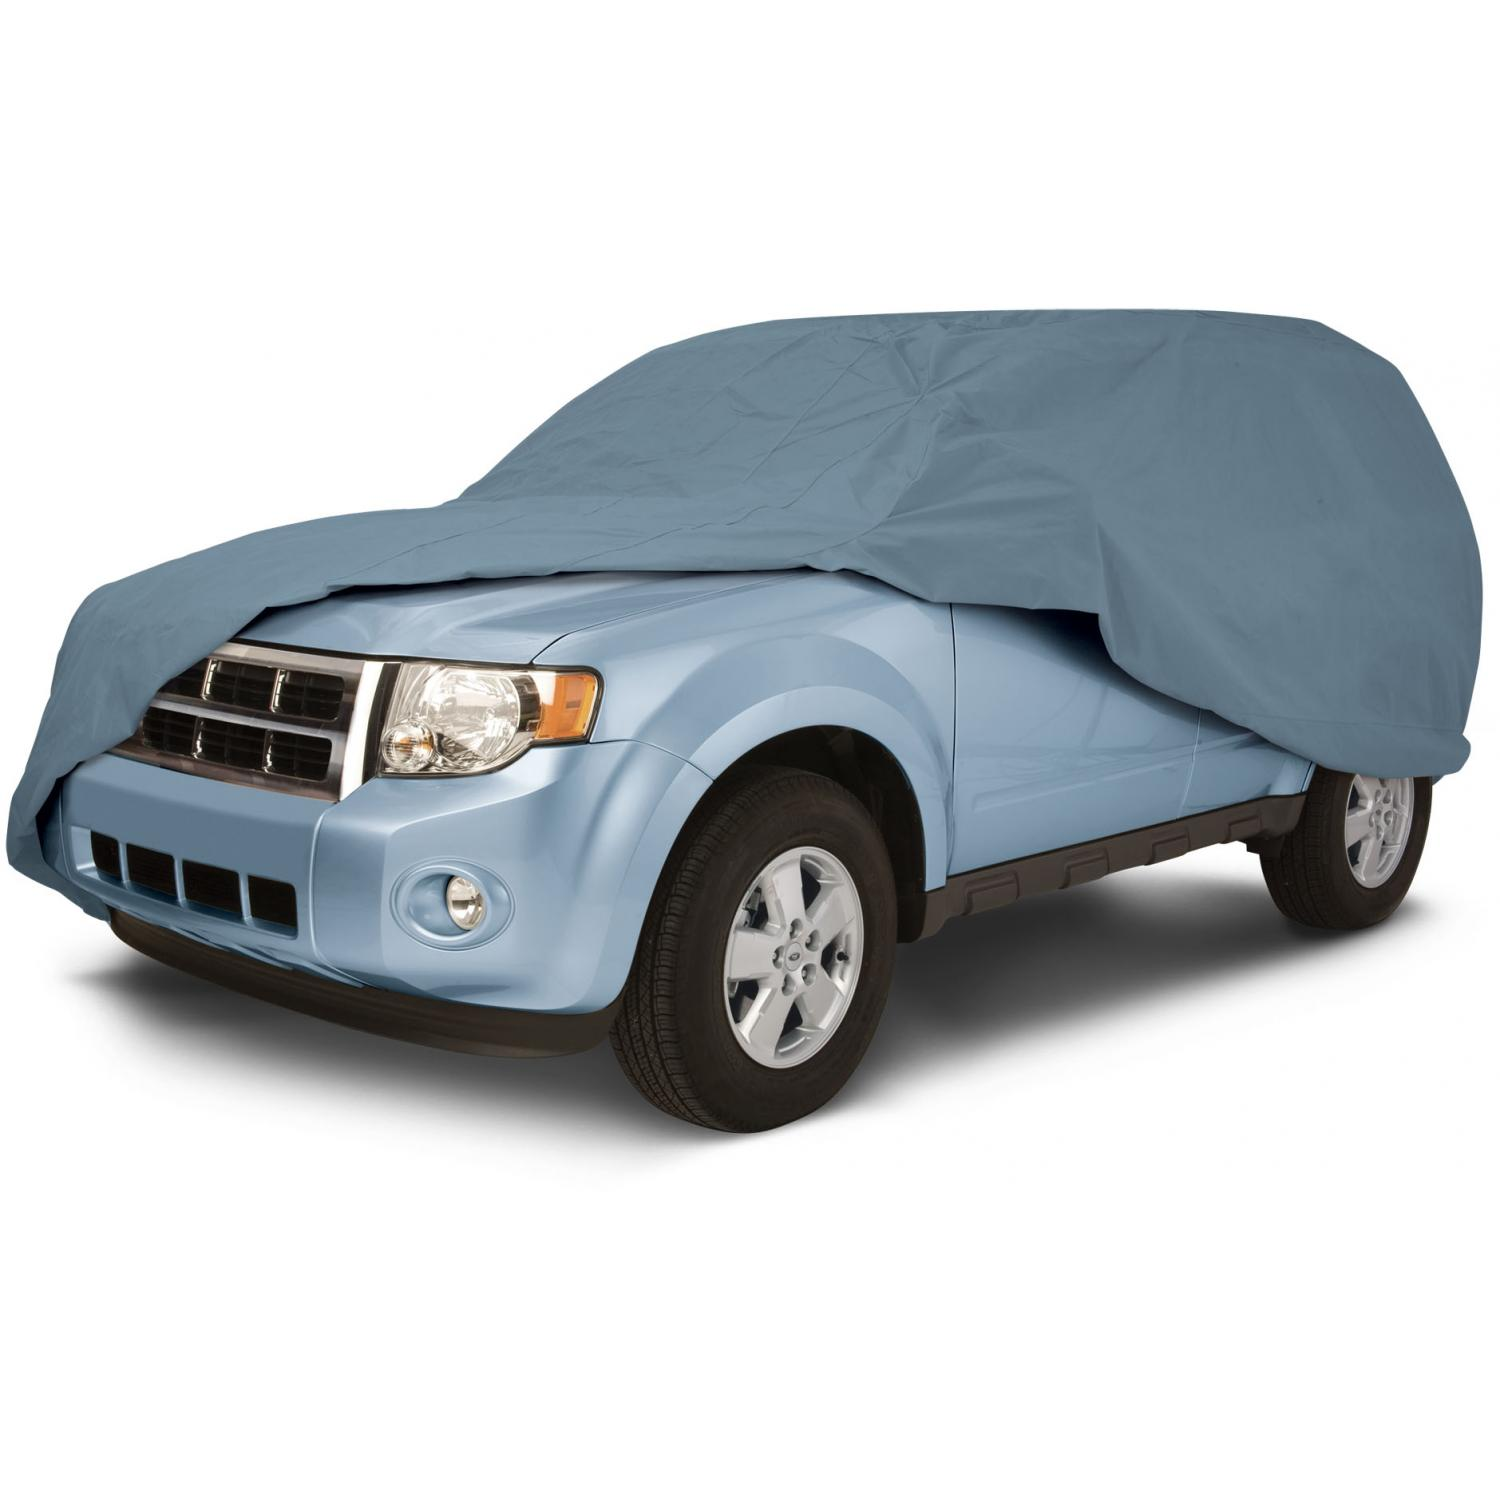 Classic Accessories PolyPRO 1 Vehicle Cover - Crew Cab Pickup